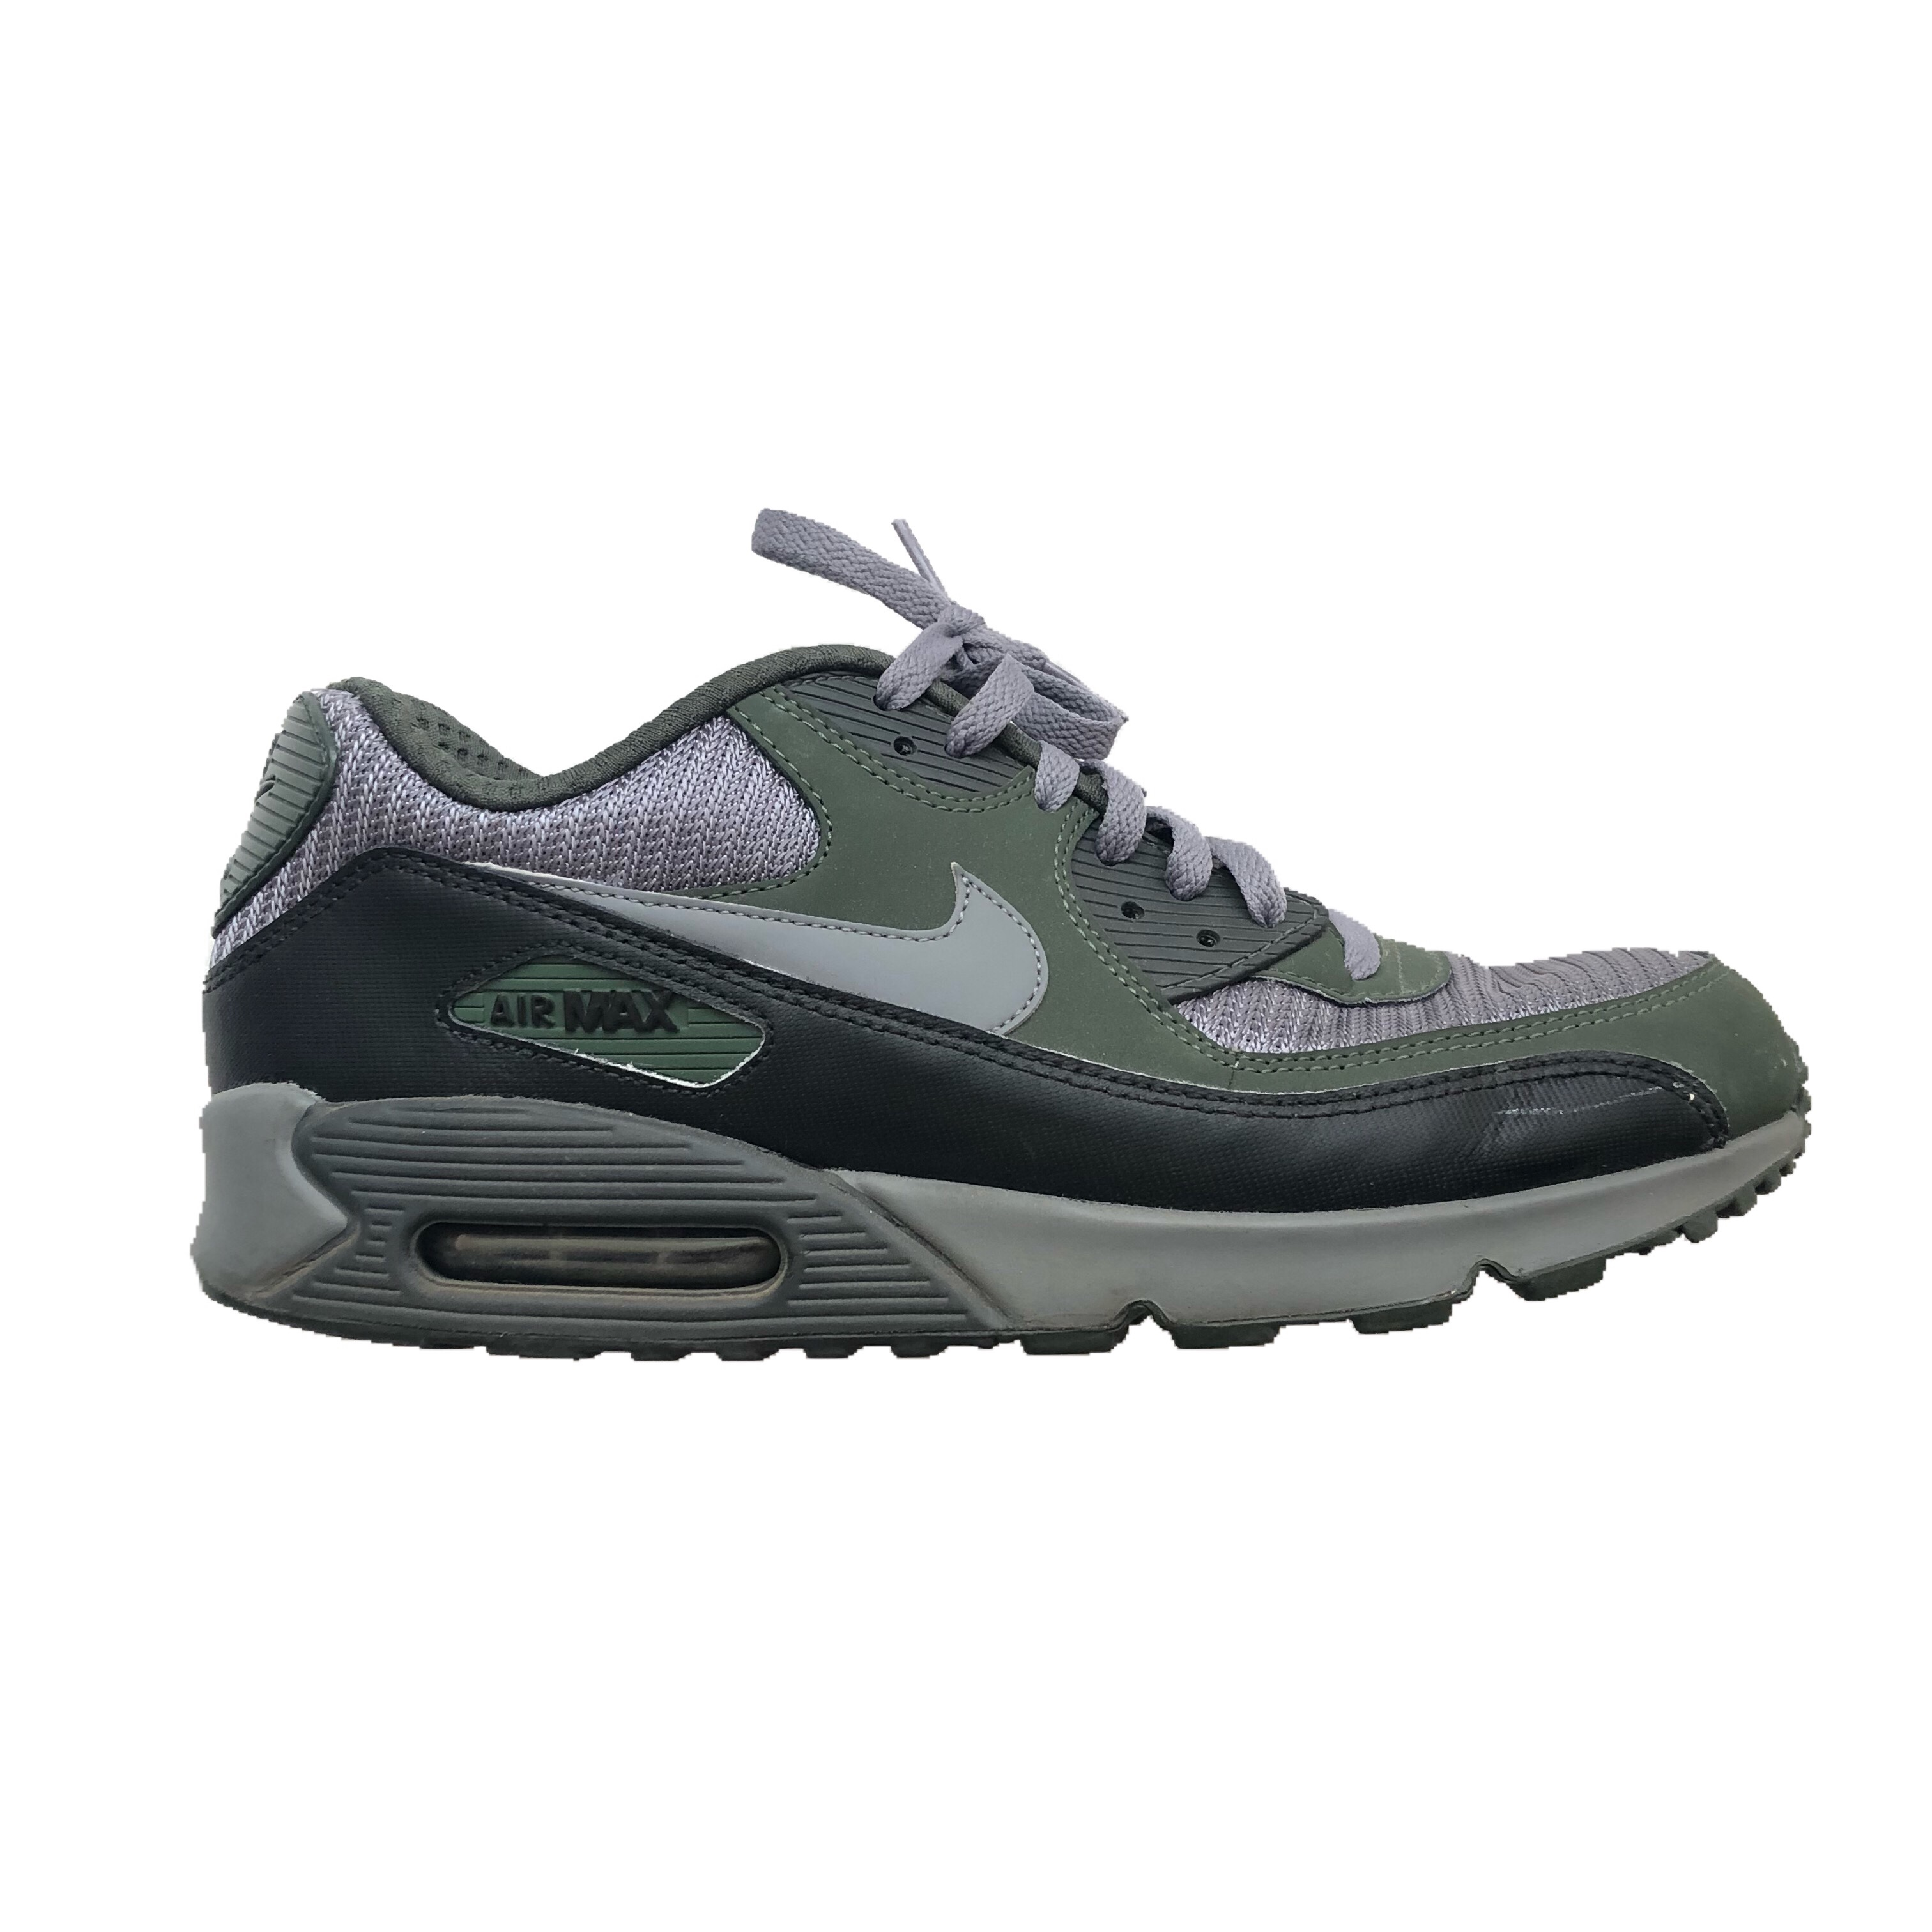 best service 1f850 41461 Nike Air Max 90🔥 •Olive Green / Size 11.5 •Flaws: no... - Depop